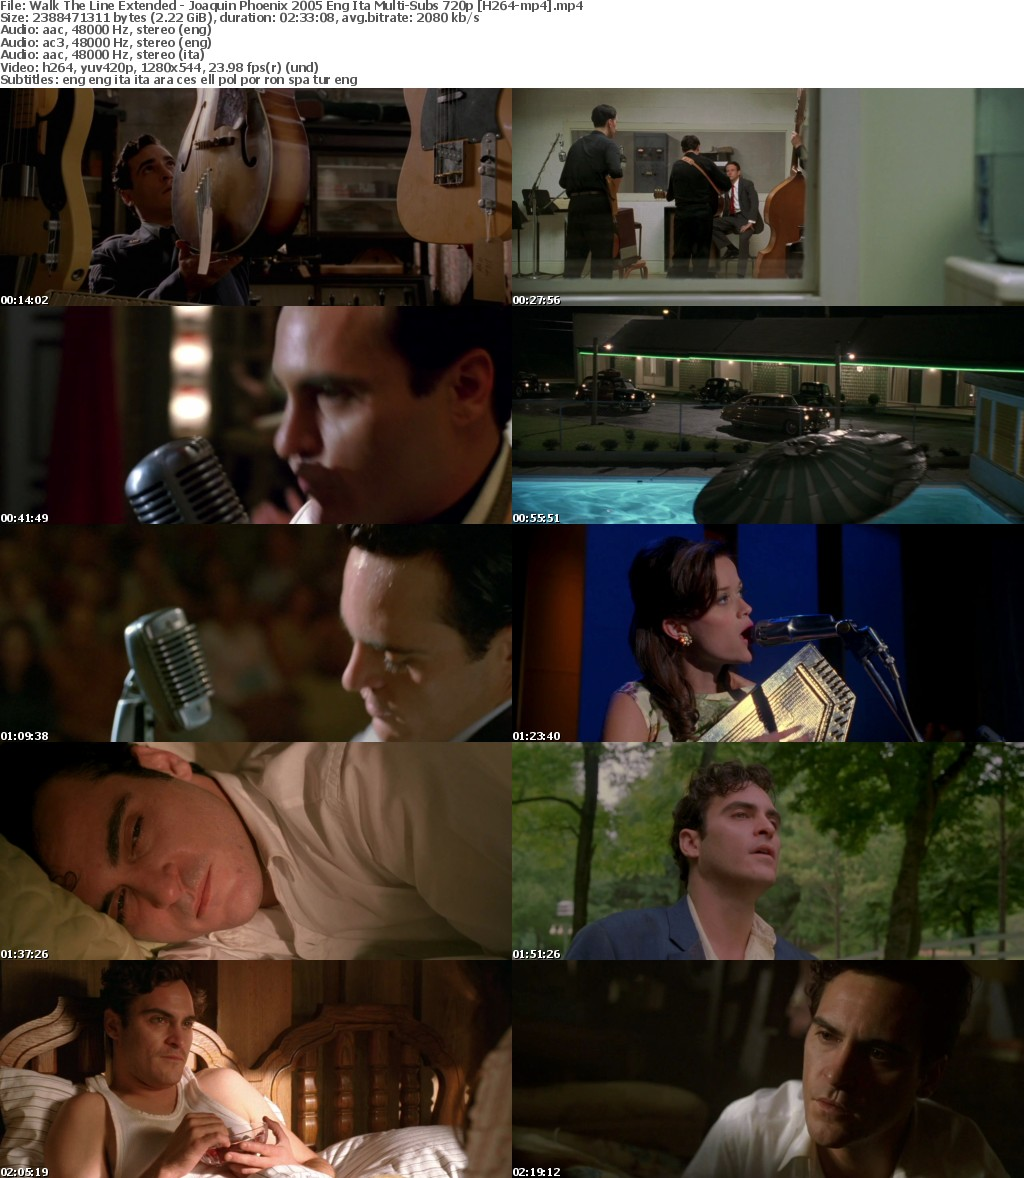 Walk The Line Extended - Joaquin Phoenix 2005 Eng Ita Multi-Subs 720p H264-mp4